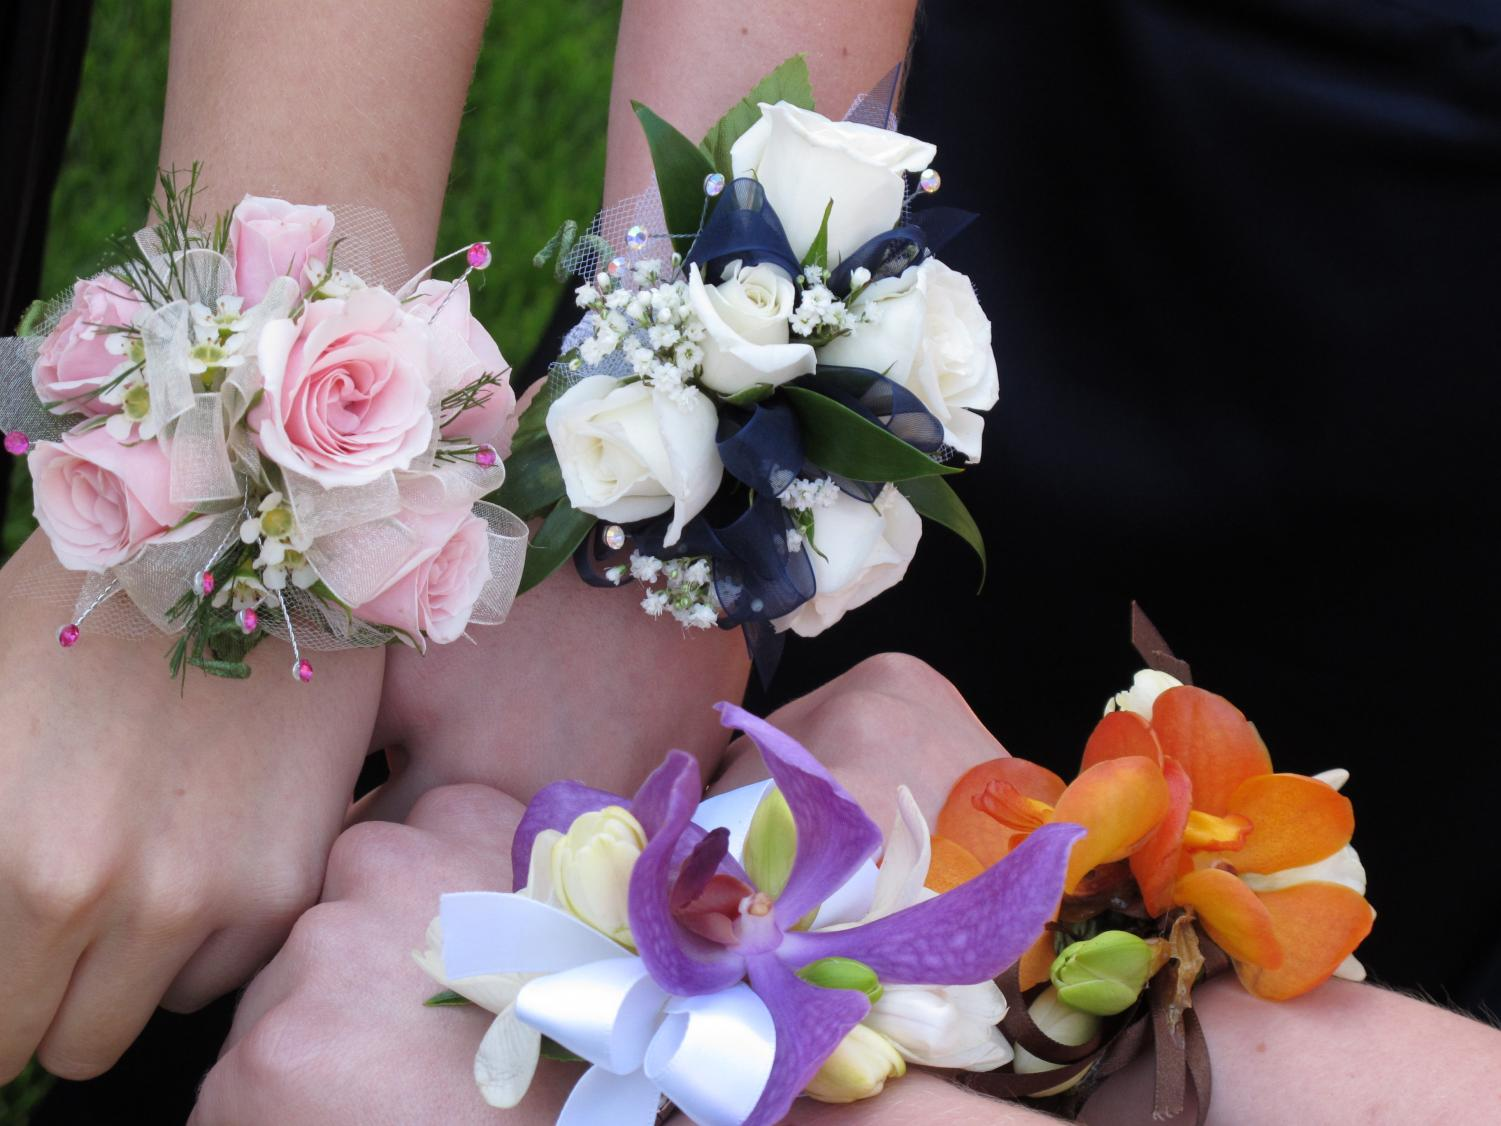 Photo via Wikimedia Commons under Creative Commons license.